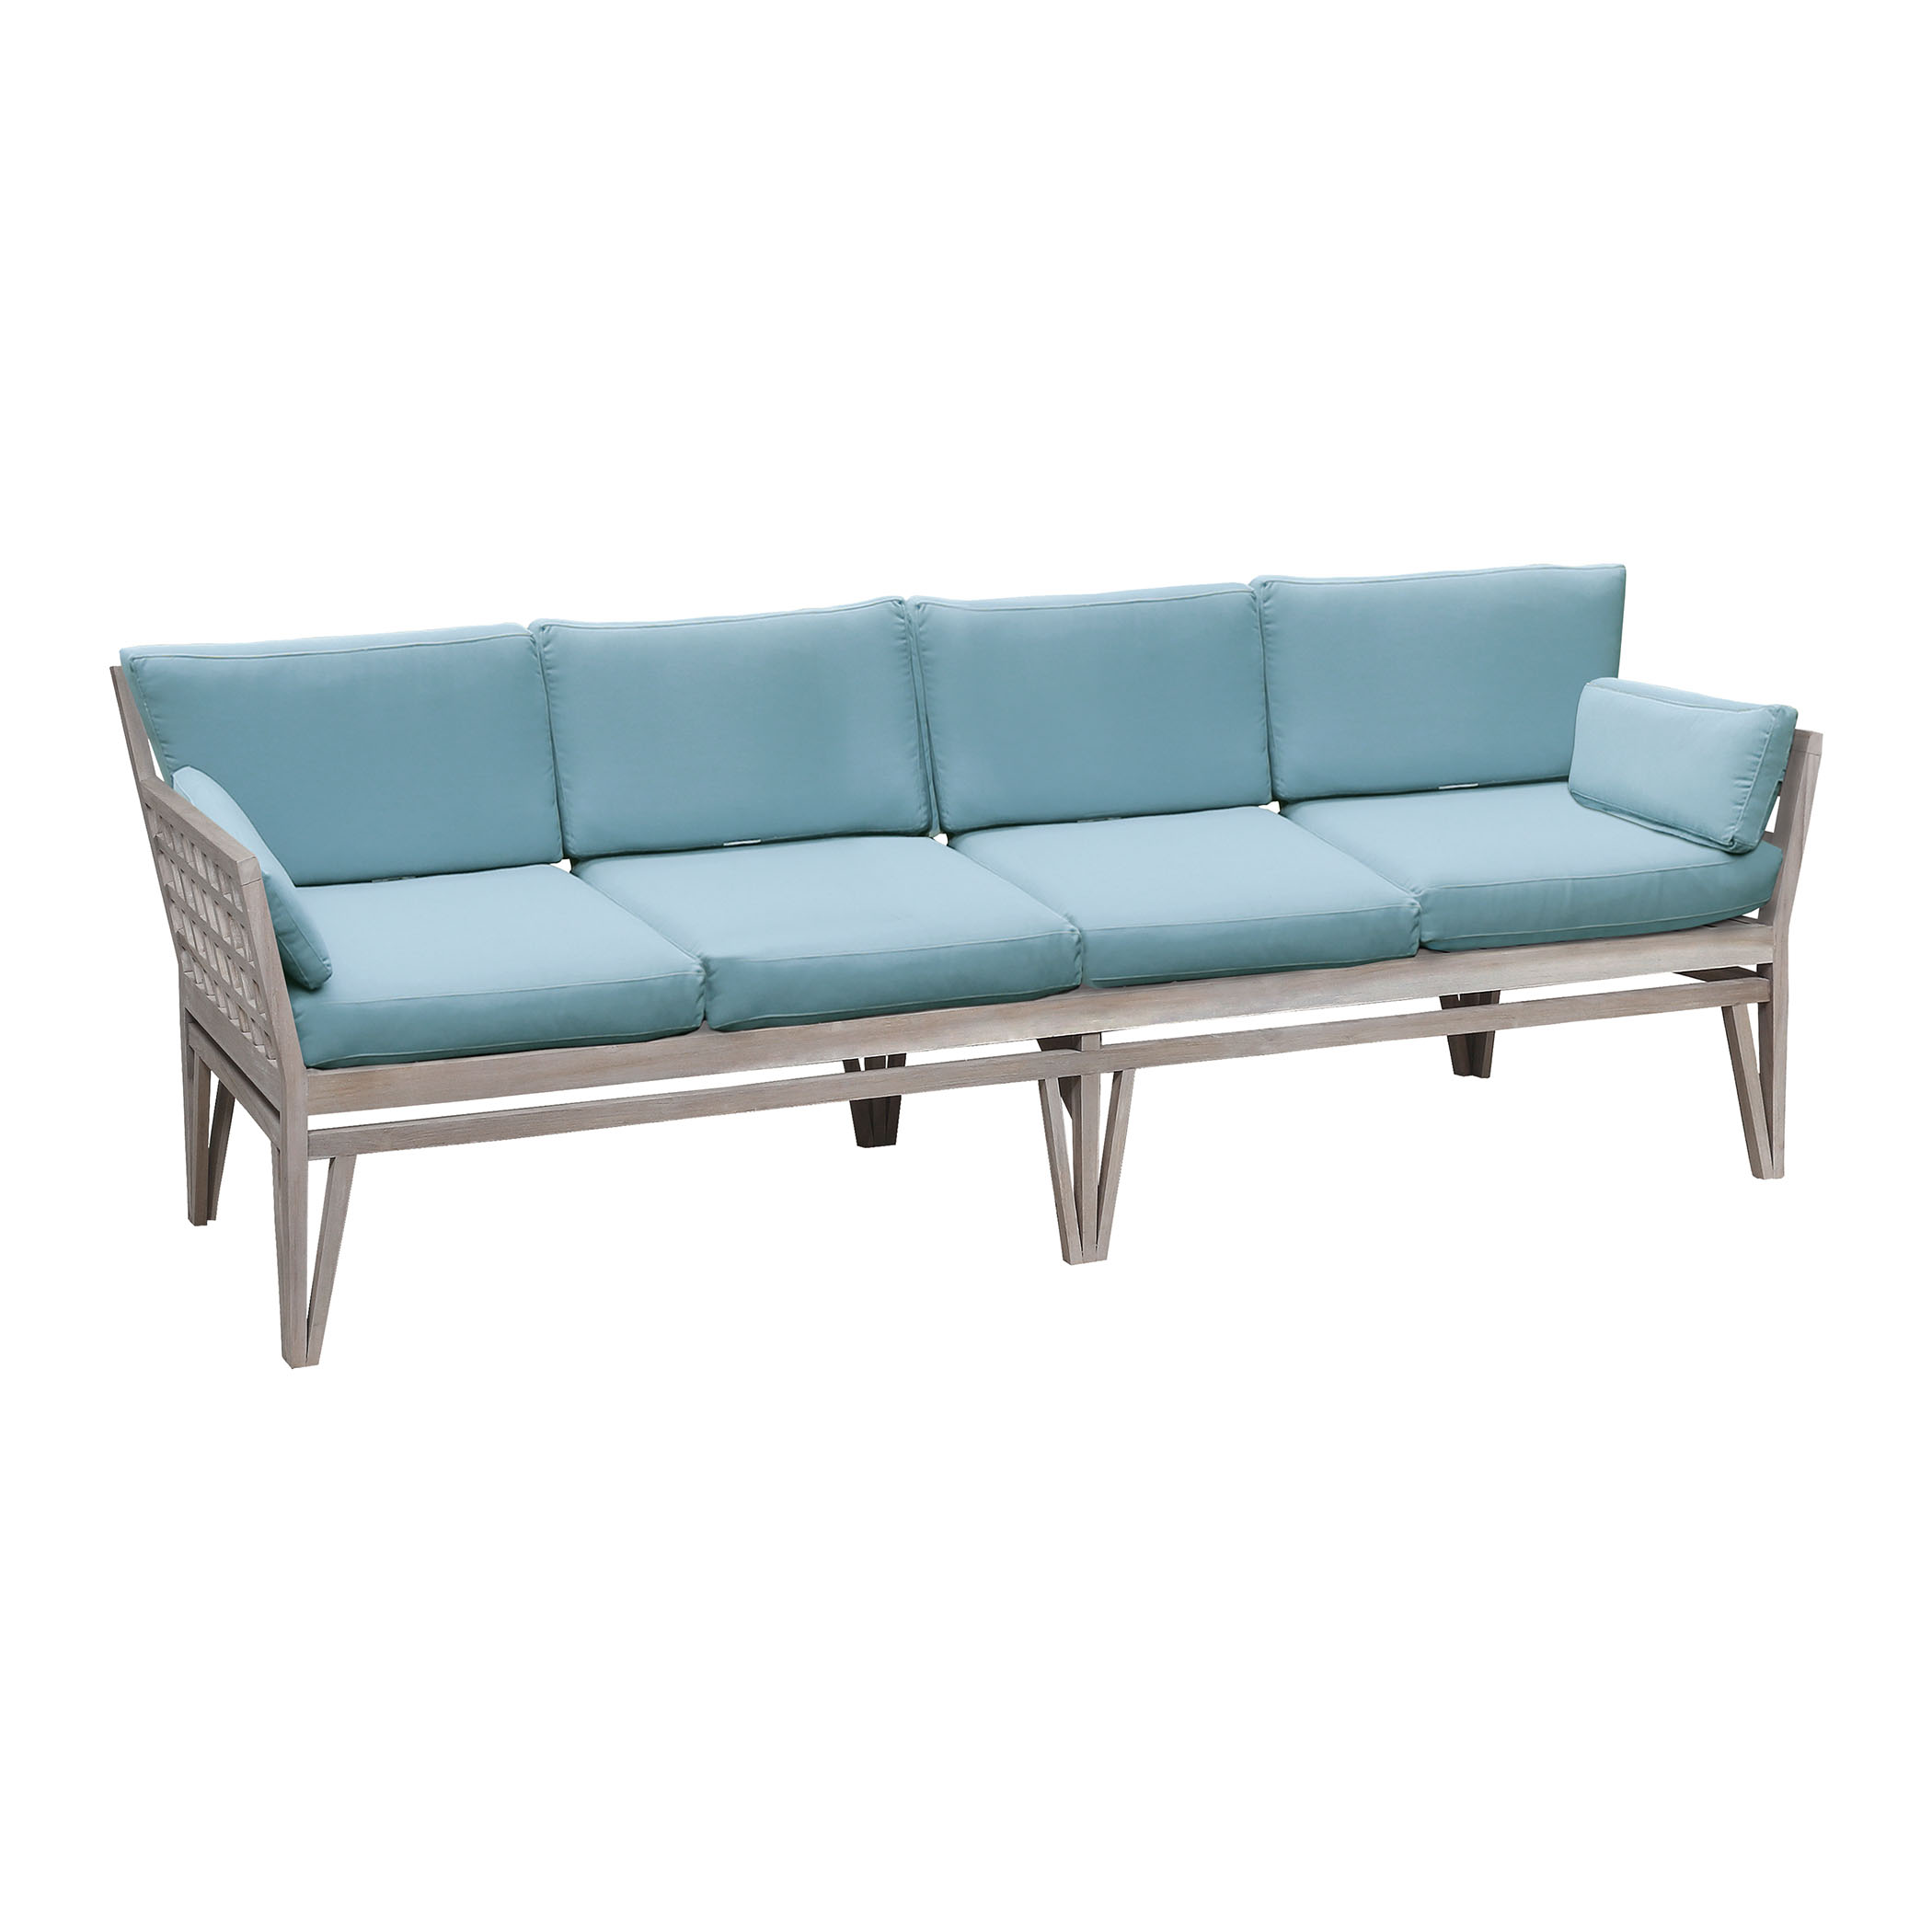 Newport Outdoor 4-Seat Sofa with Set of 10 Sea Green Cushions 6518004HT-SO | ELK Home